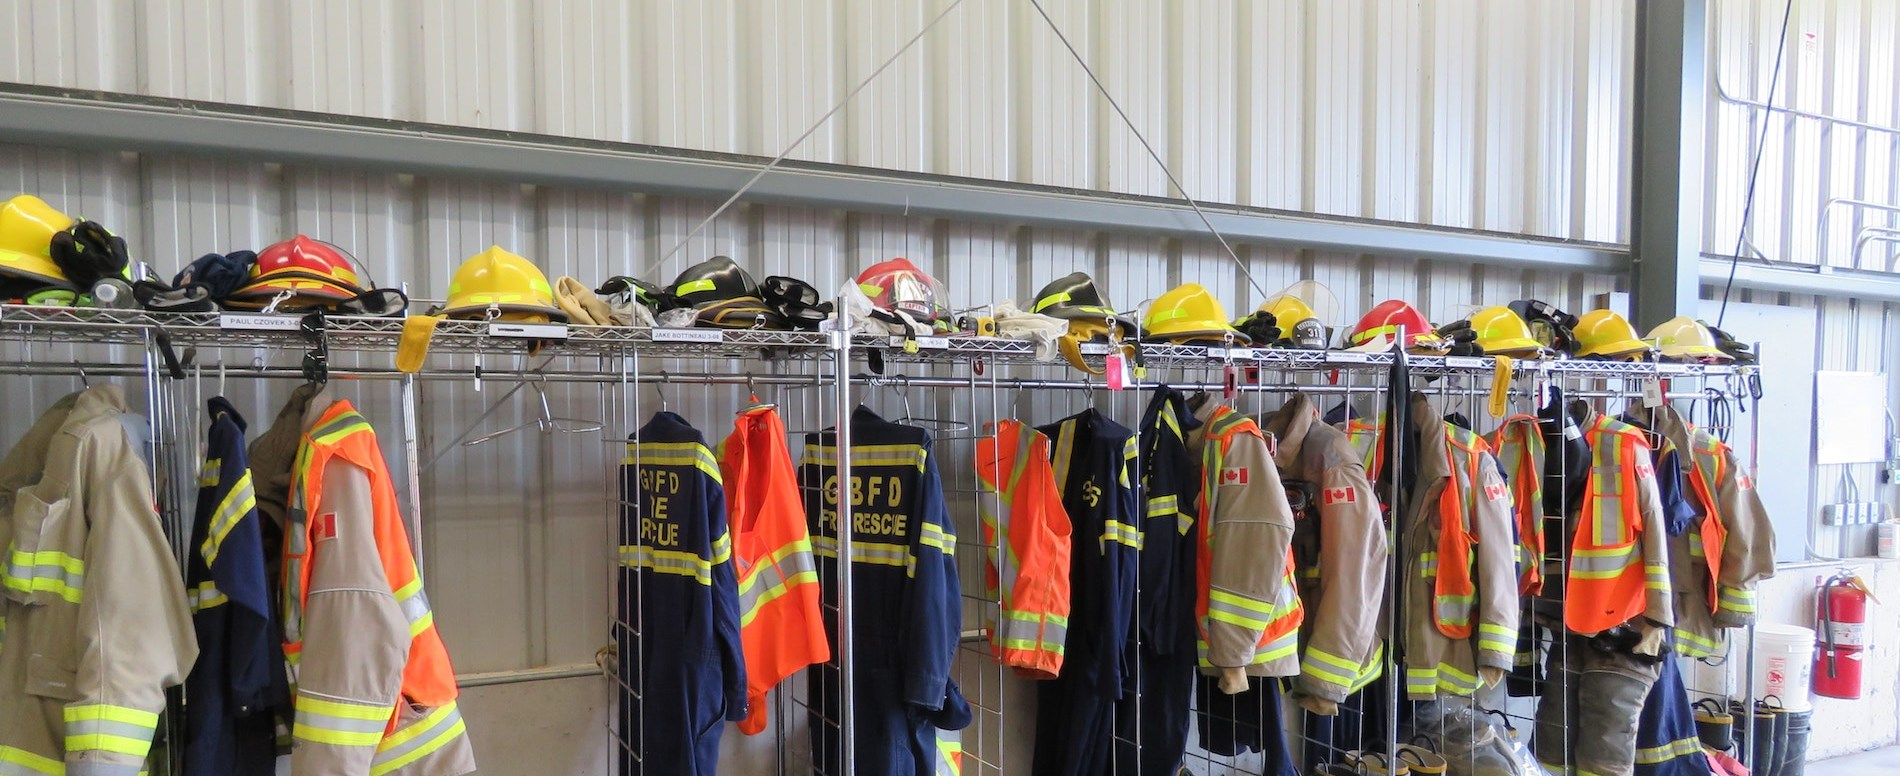 Firefighter equipment hanging on hooks